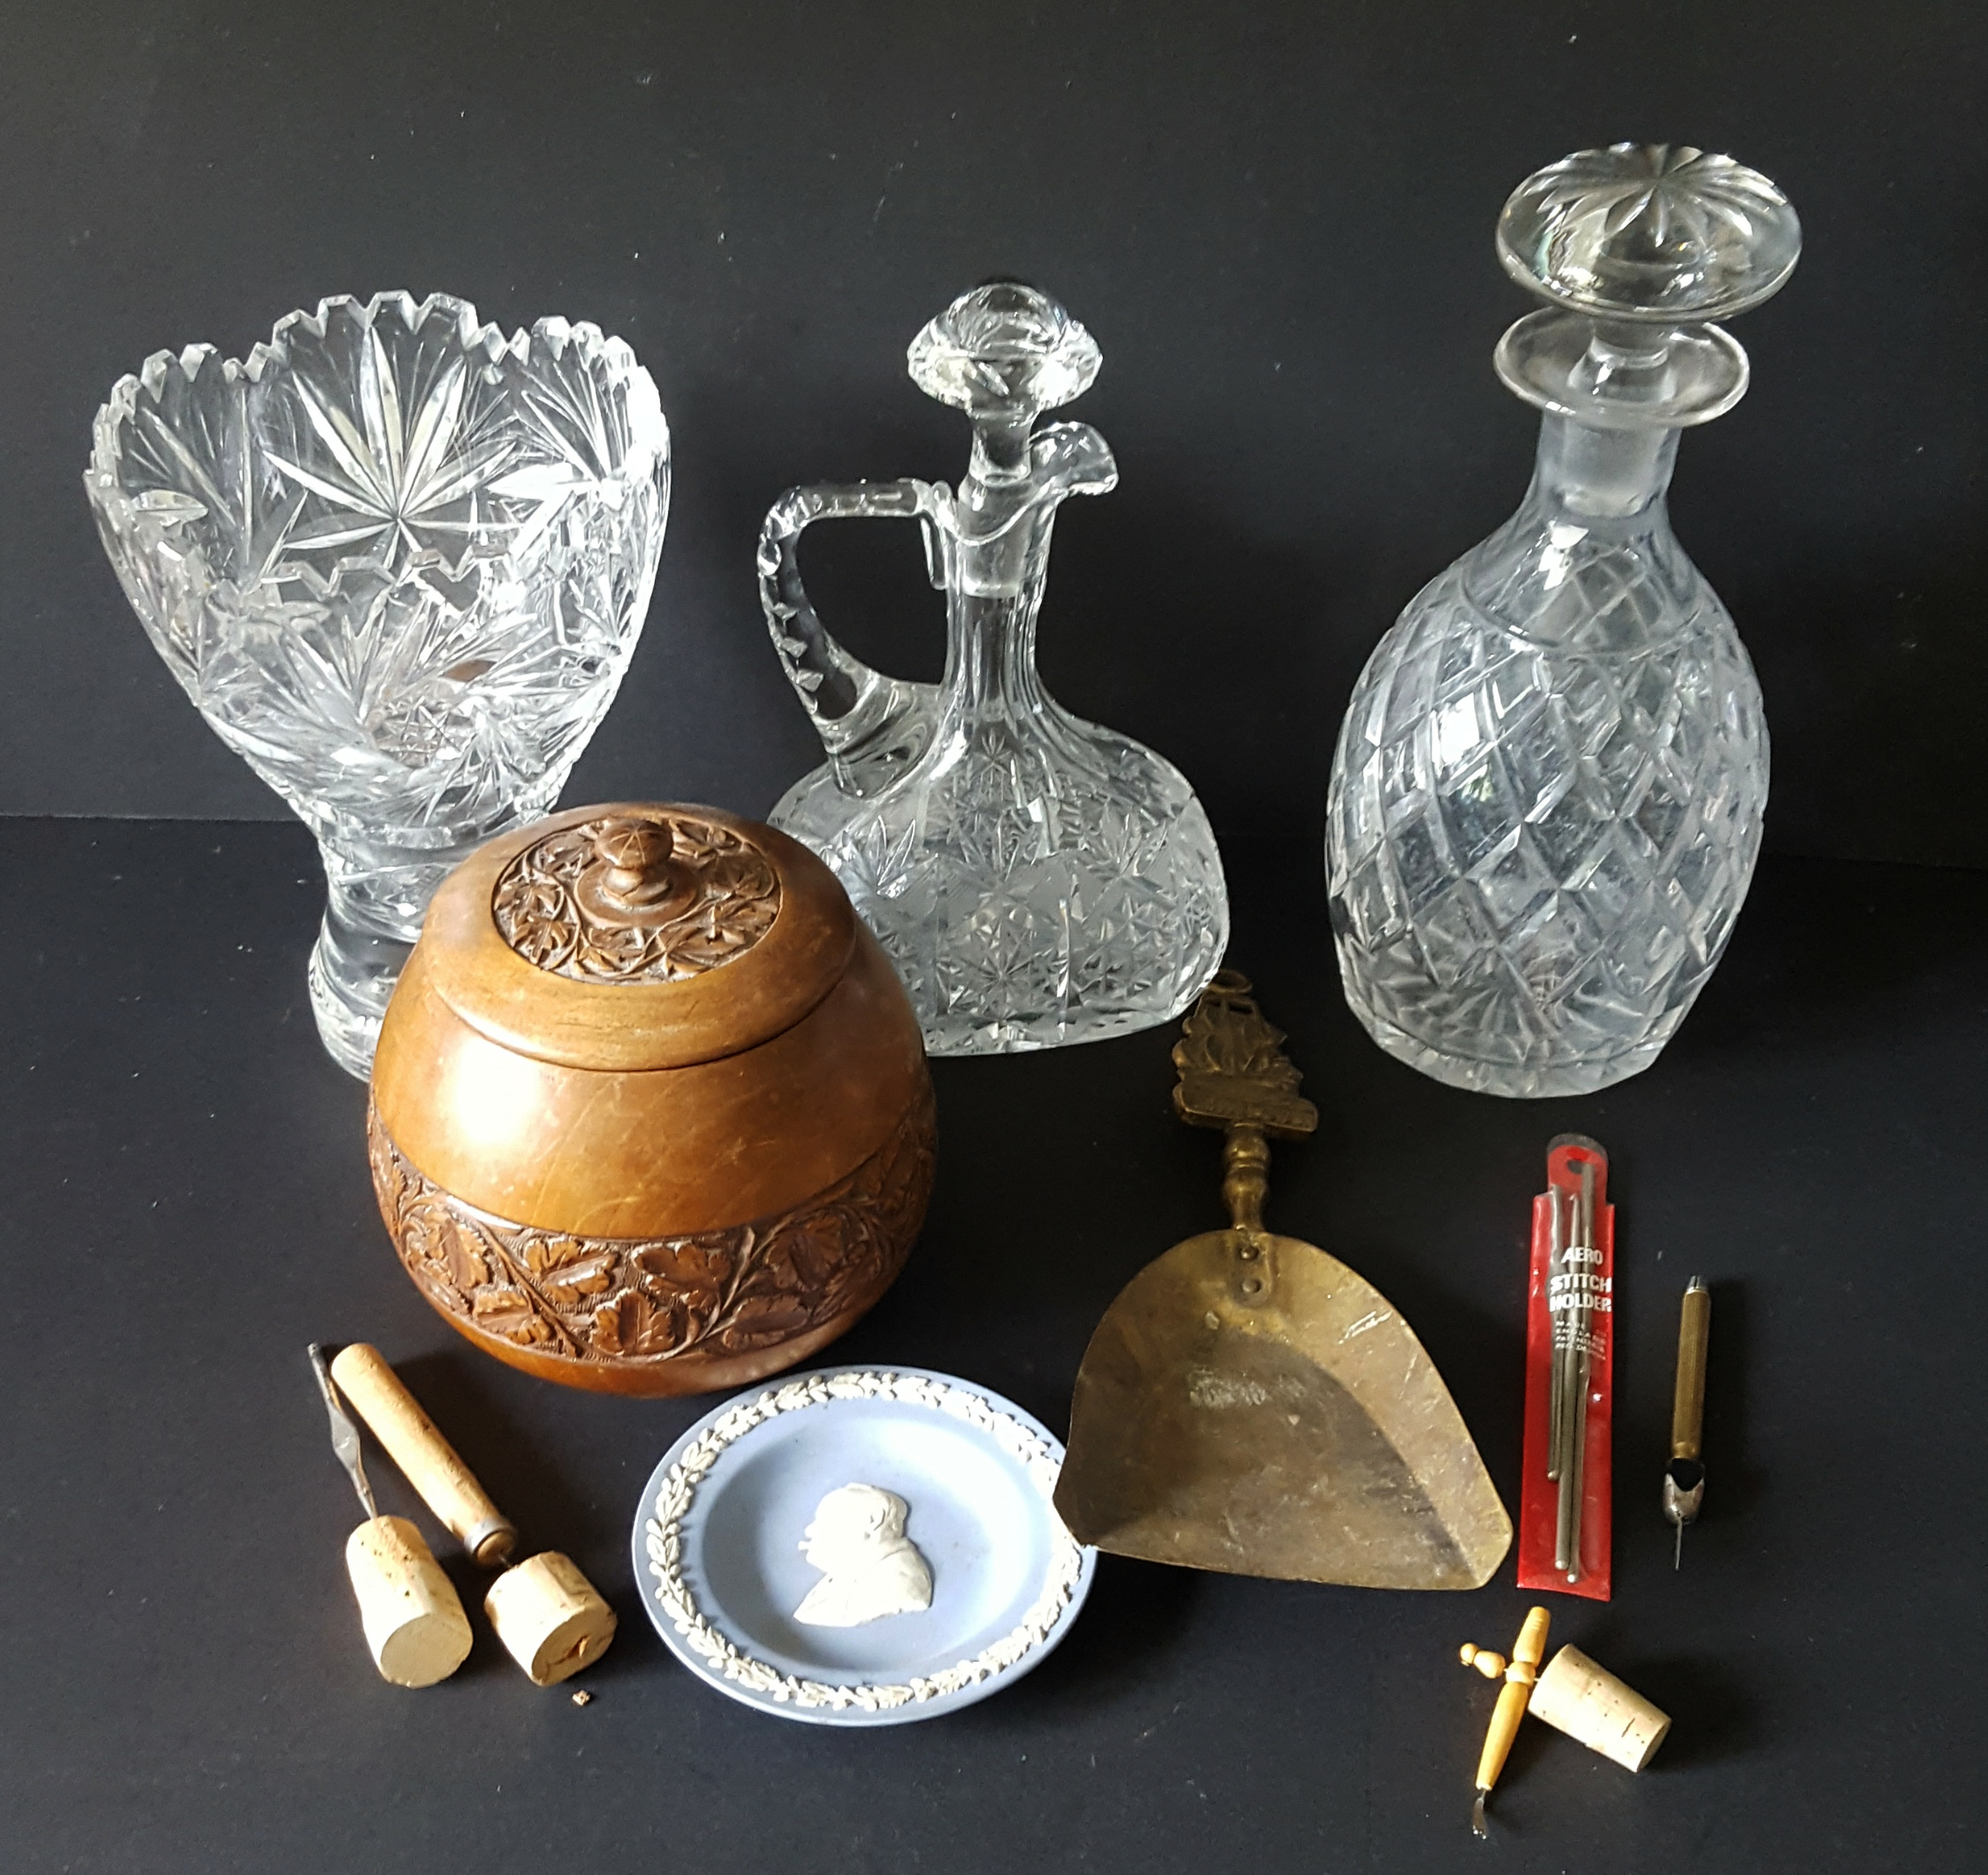 Lot 102 - Vintage Retro Parcel of Decanters Wedgwood Brass Lace Work Tools & Treen NO RESERVE